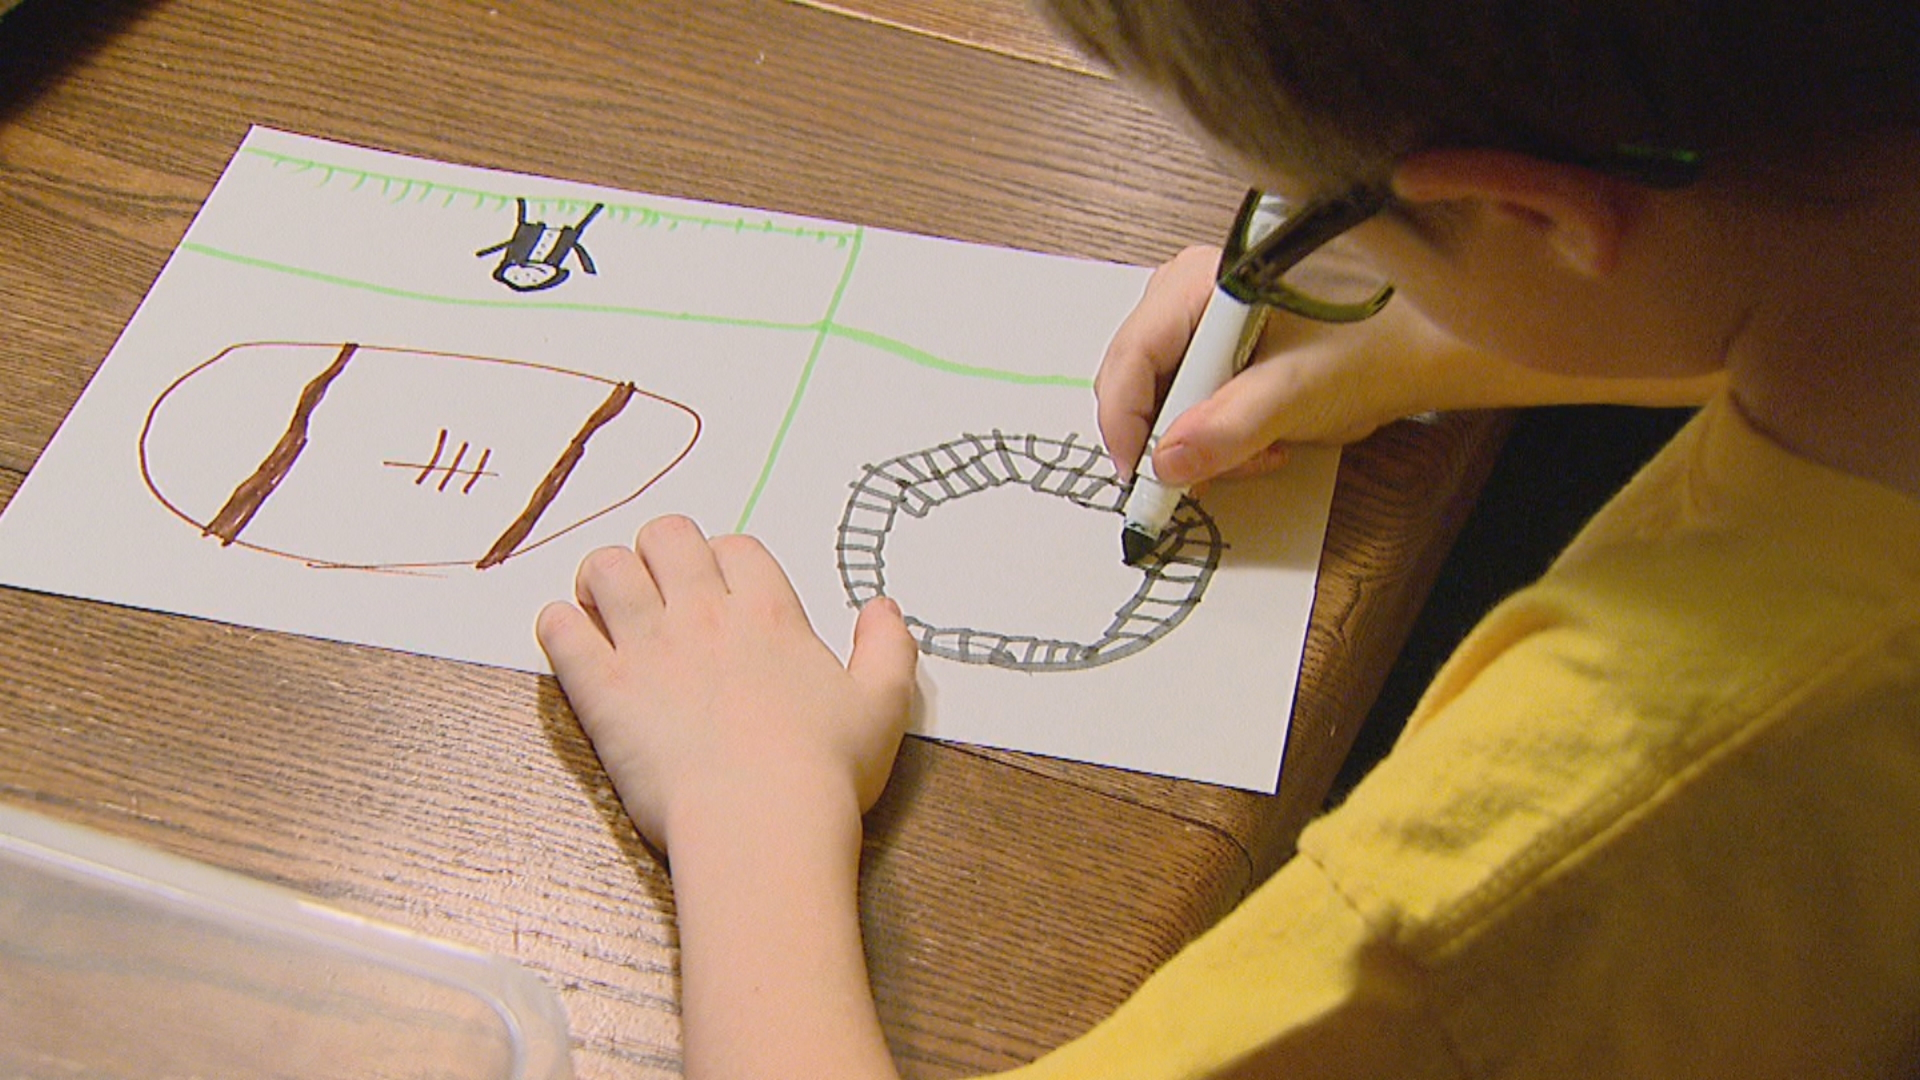 David Gelb drawing a picture. The 7-year-old Allouez boy is raising donations through his artwork for Children's Hospital of Wisconsin. (WLUK/Jesse Basinski)